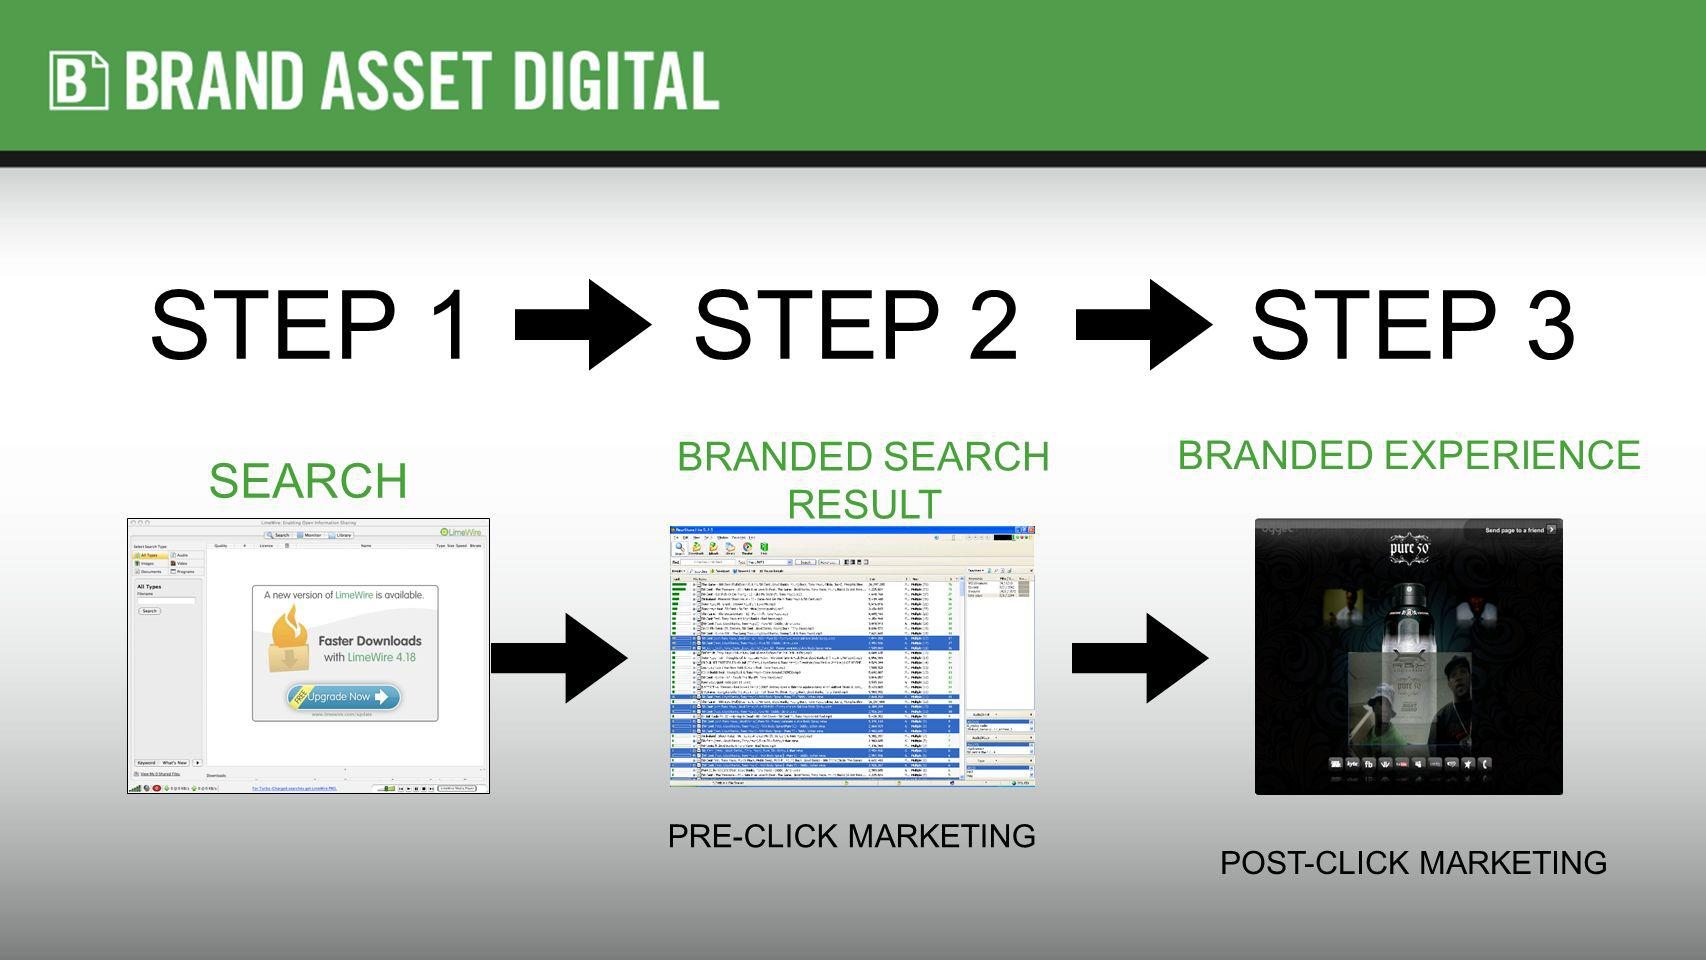 STEP 1STEP 2STEP 3 BRANDED EXPERIENCE POST-CLICK MARKETING BRANDED SEARCH RESULT PRE-CLICK MARKETING SEARCH